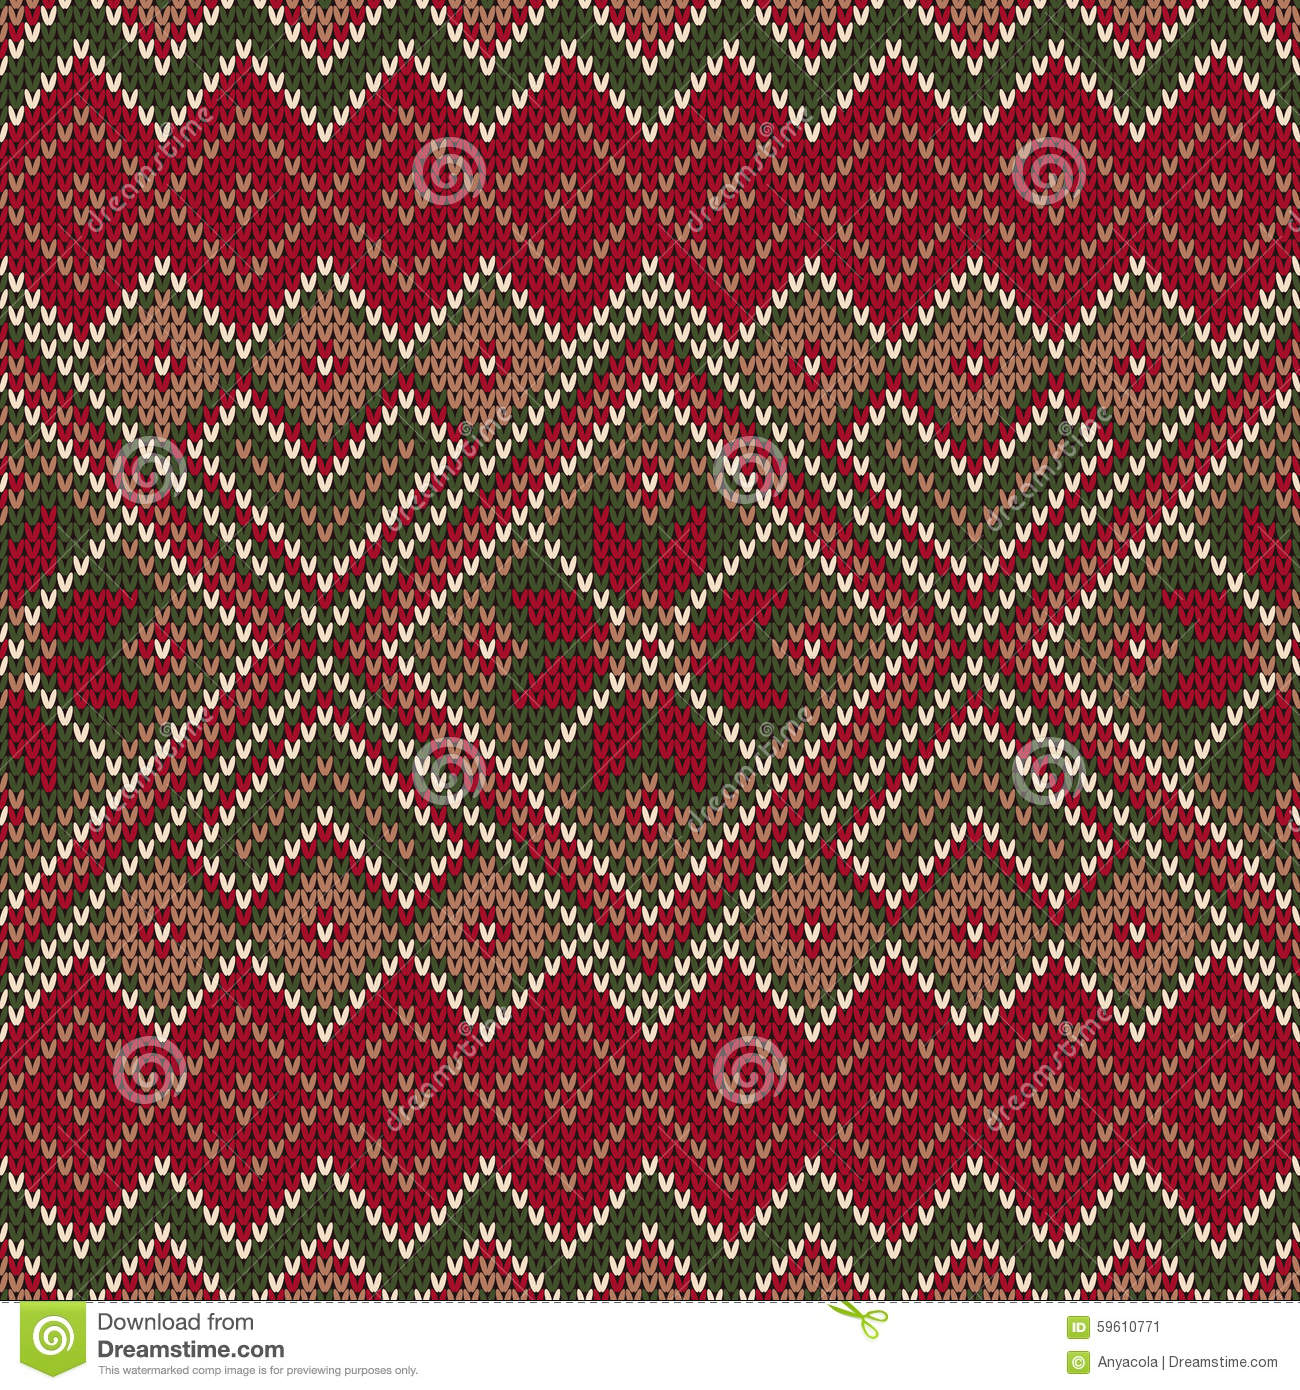 Free Baby Knitting Patterns For Blankets : Traditional Fair Isle Style Seamless Knitted Pattern. Christmas Stock Vector ...